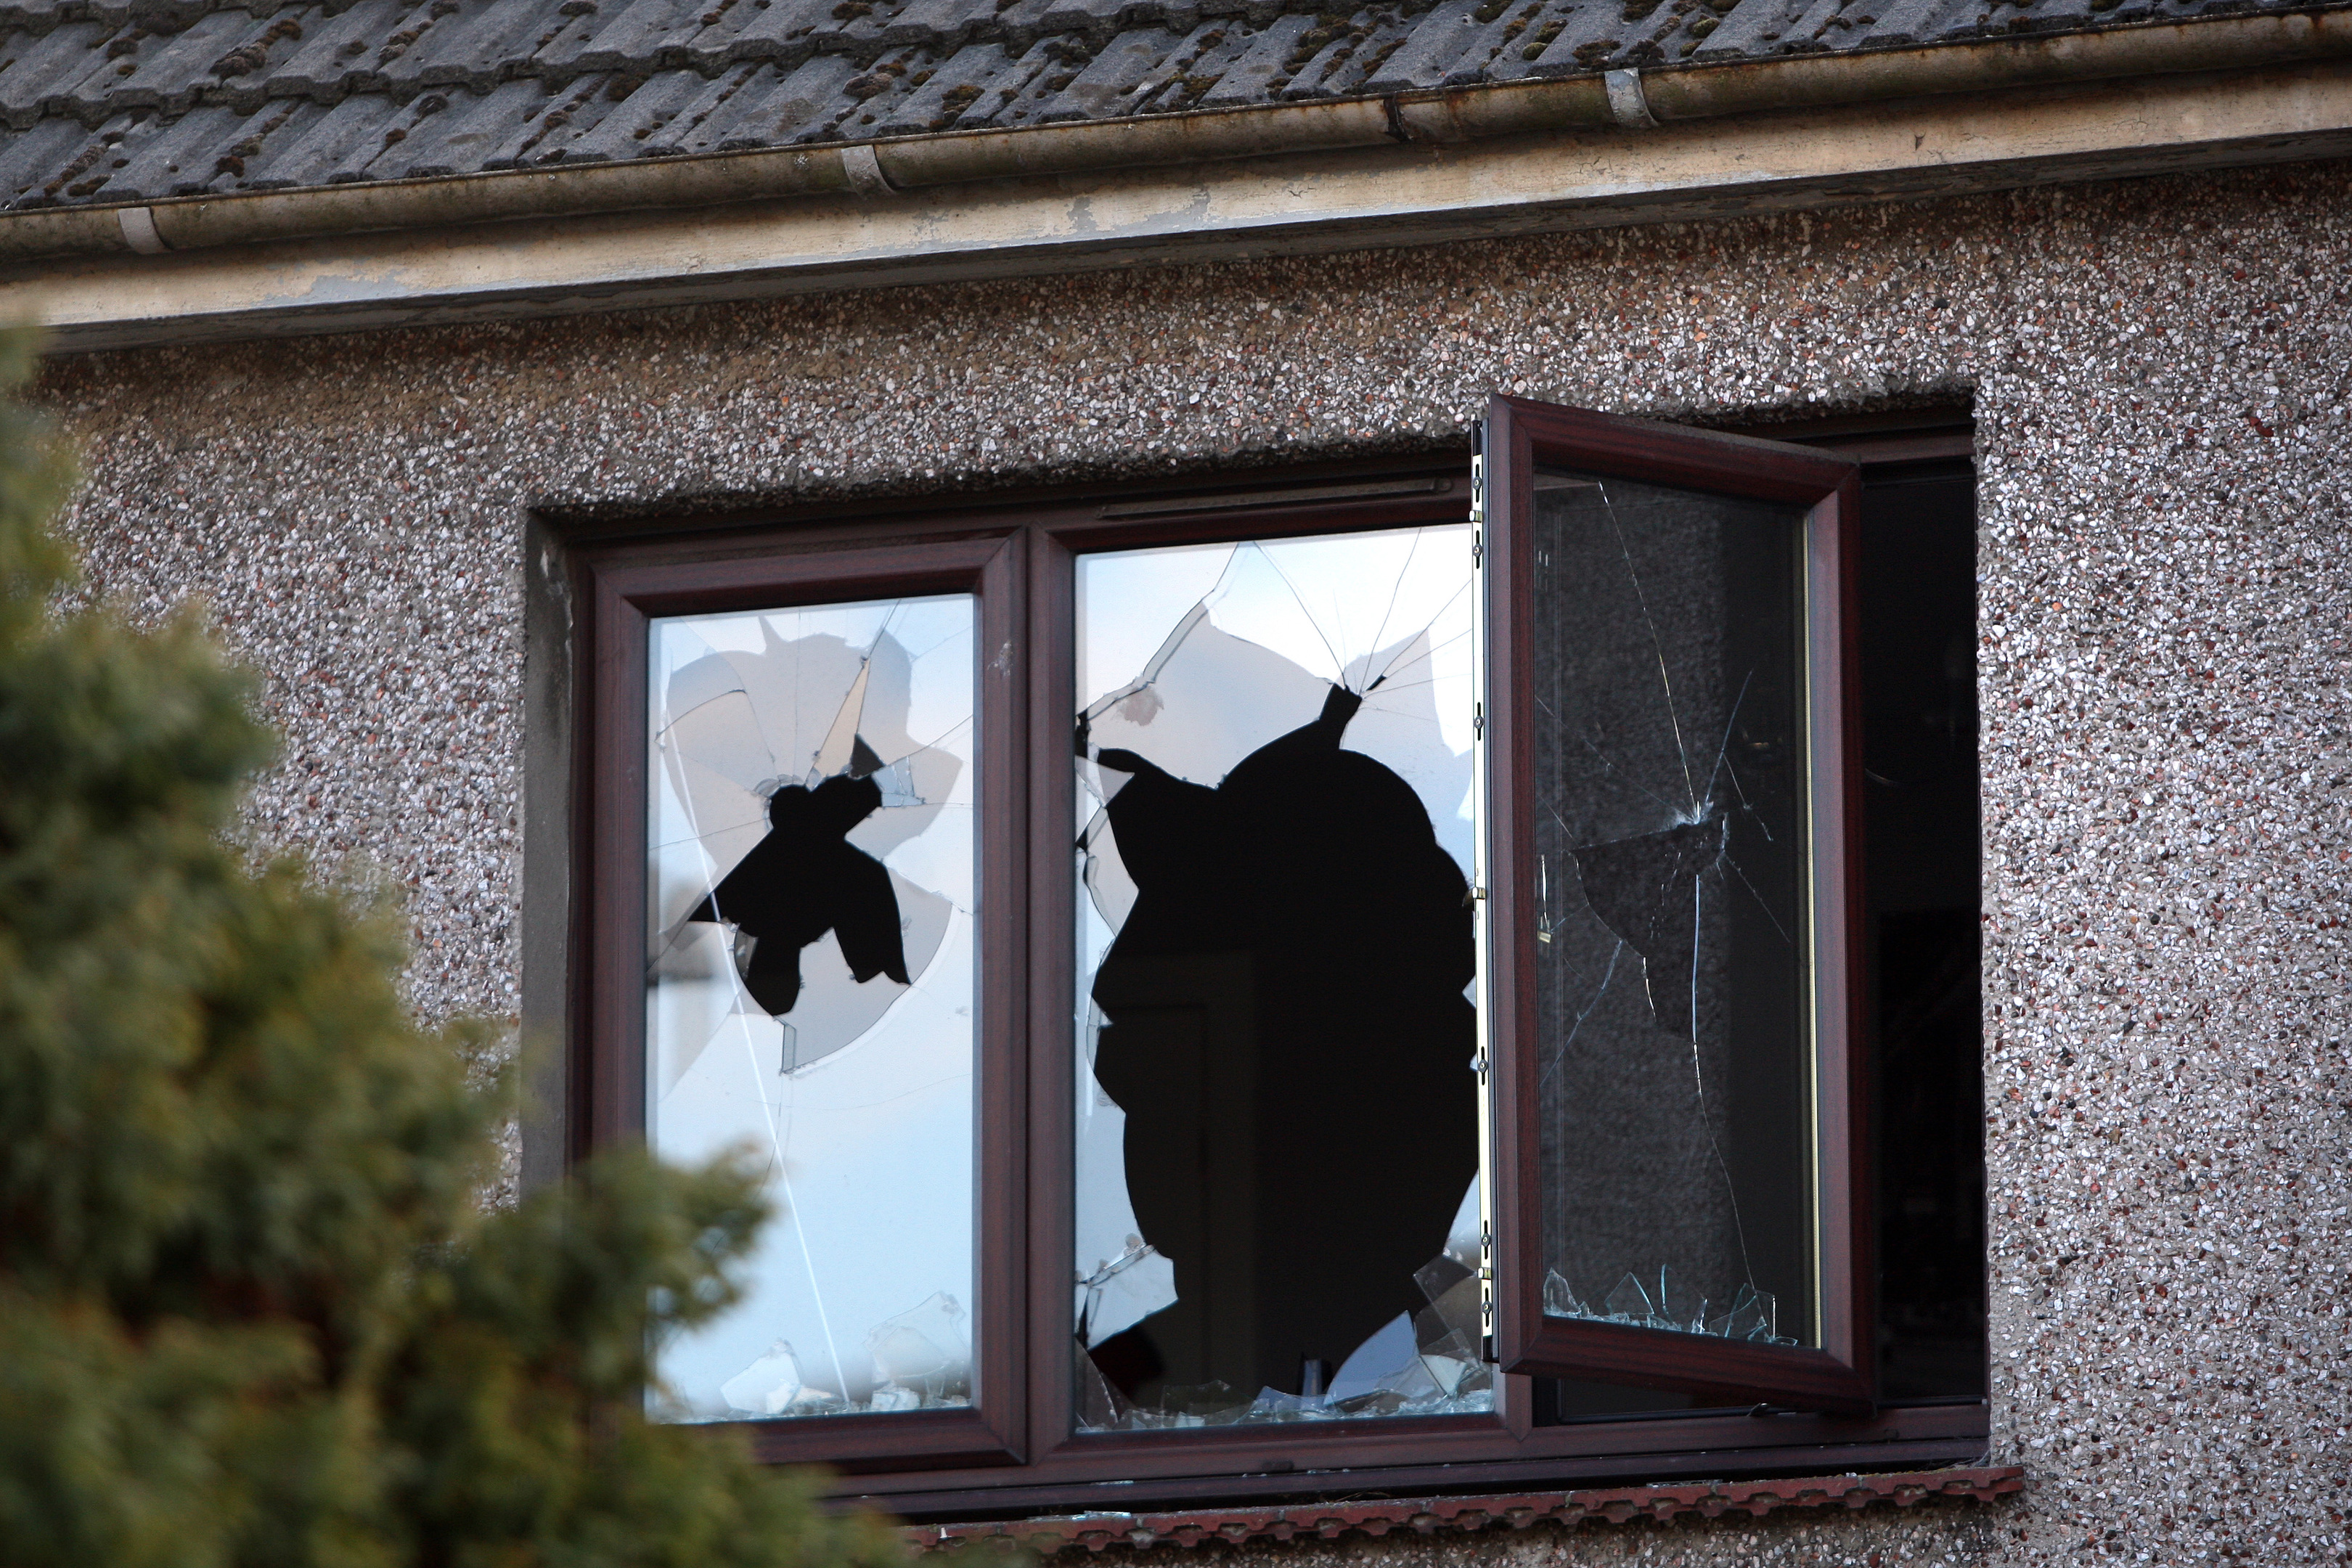 Windows were smashed at a property in Kingennie Road.